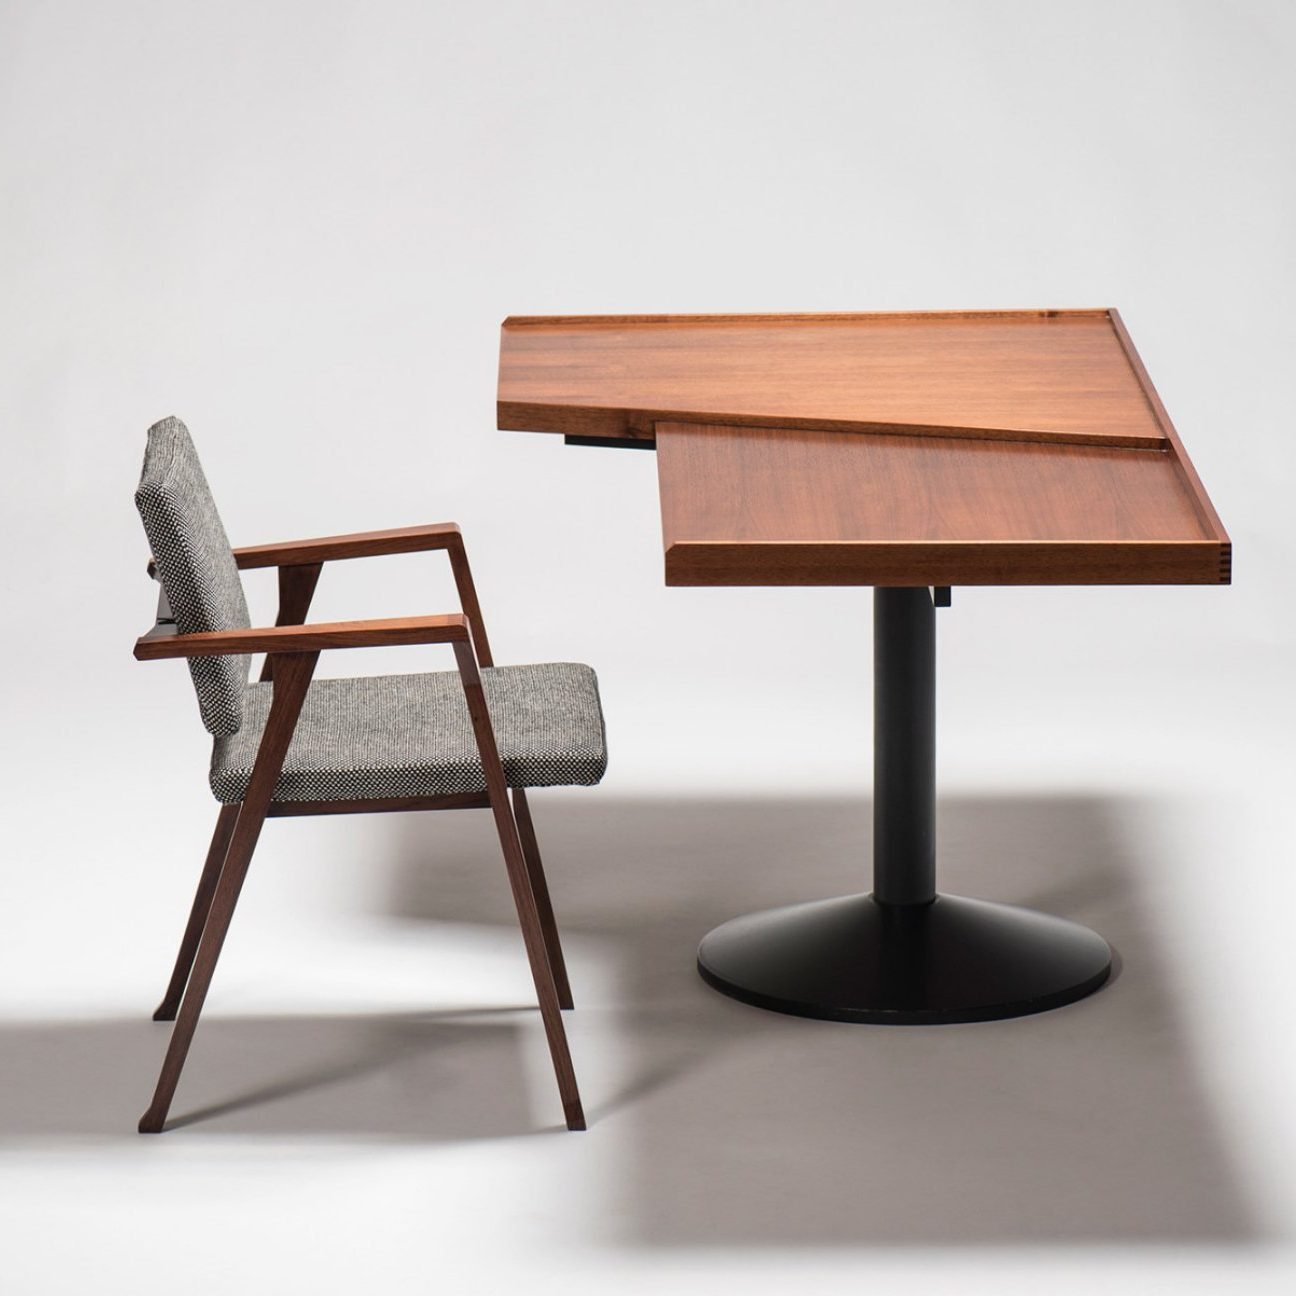 Poggi Sadera desk and Luisa chair designed by Italian designer Franco Albini